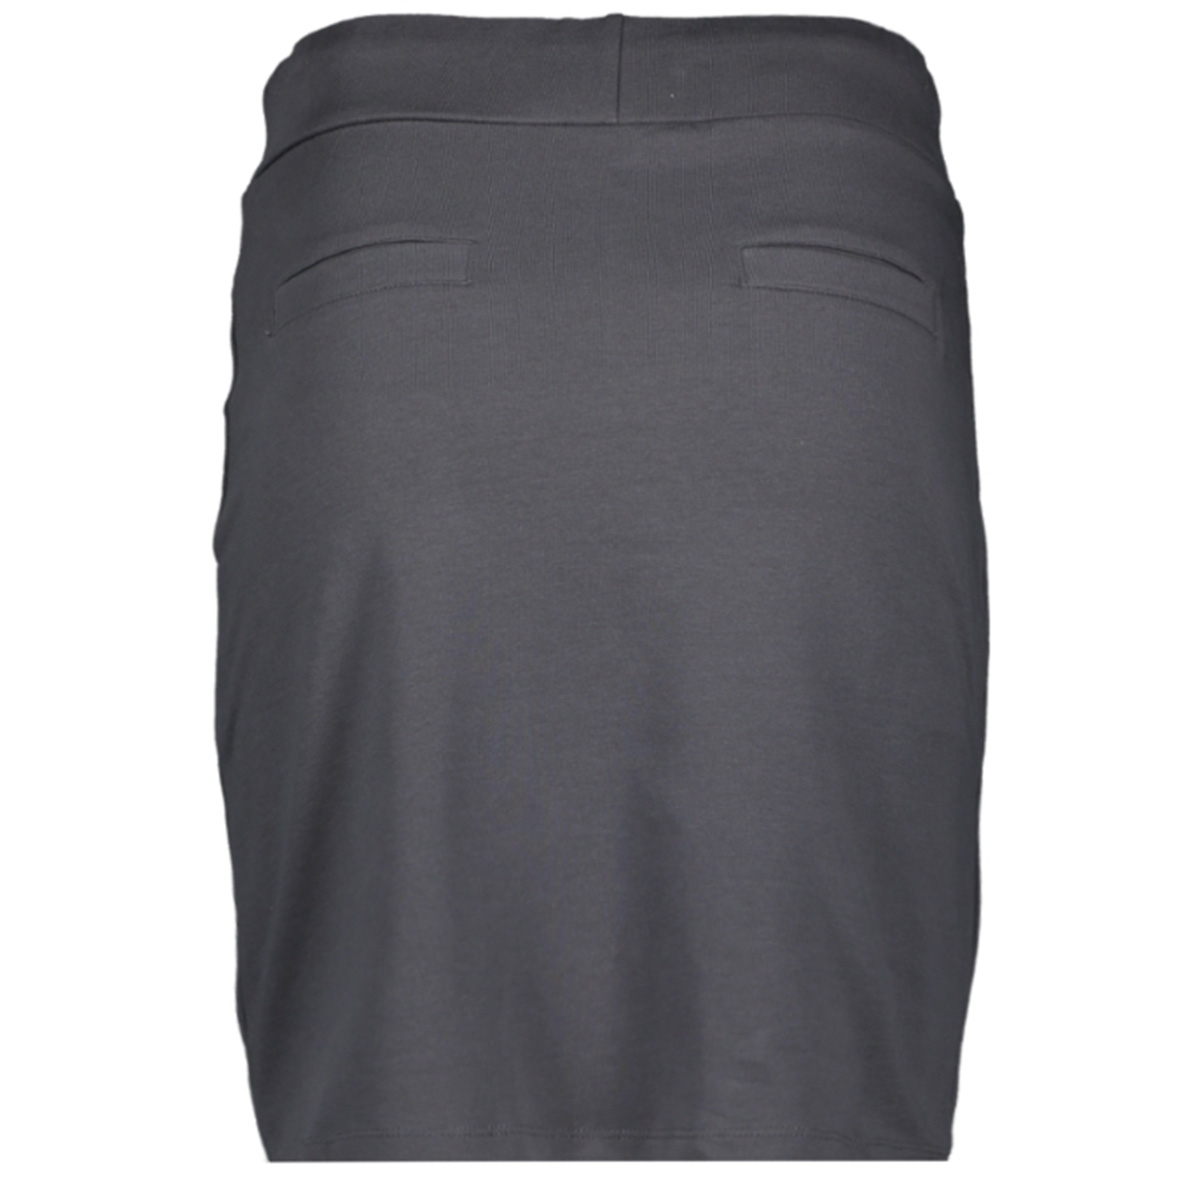 jessie skirt with buttons 201 zoso rok 0059 charcoal